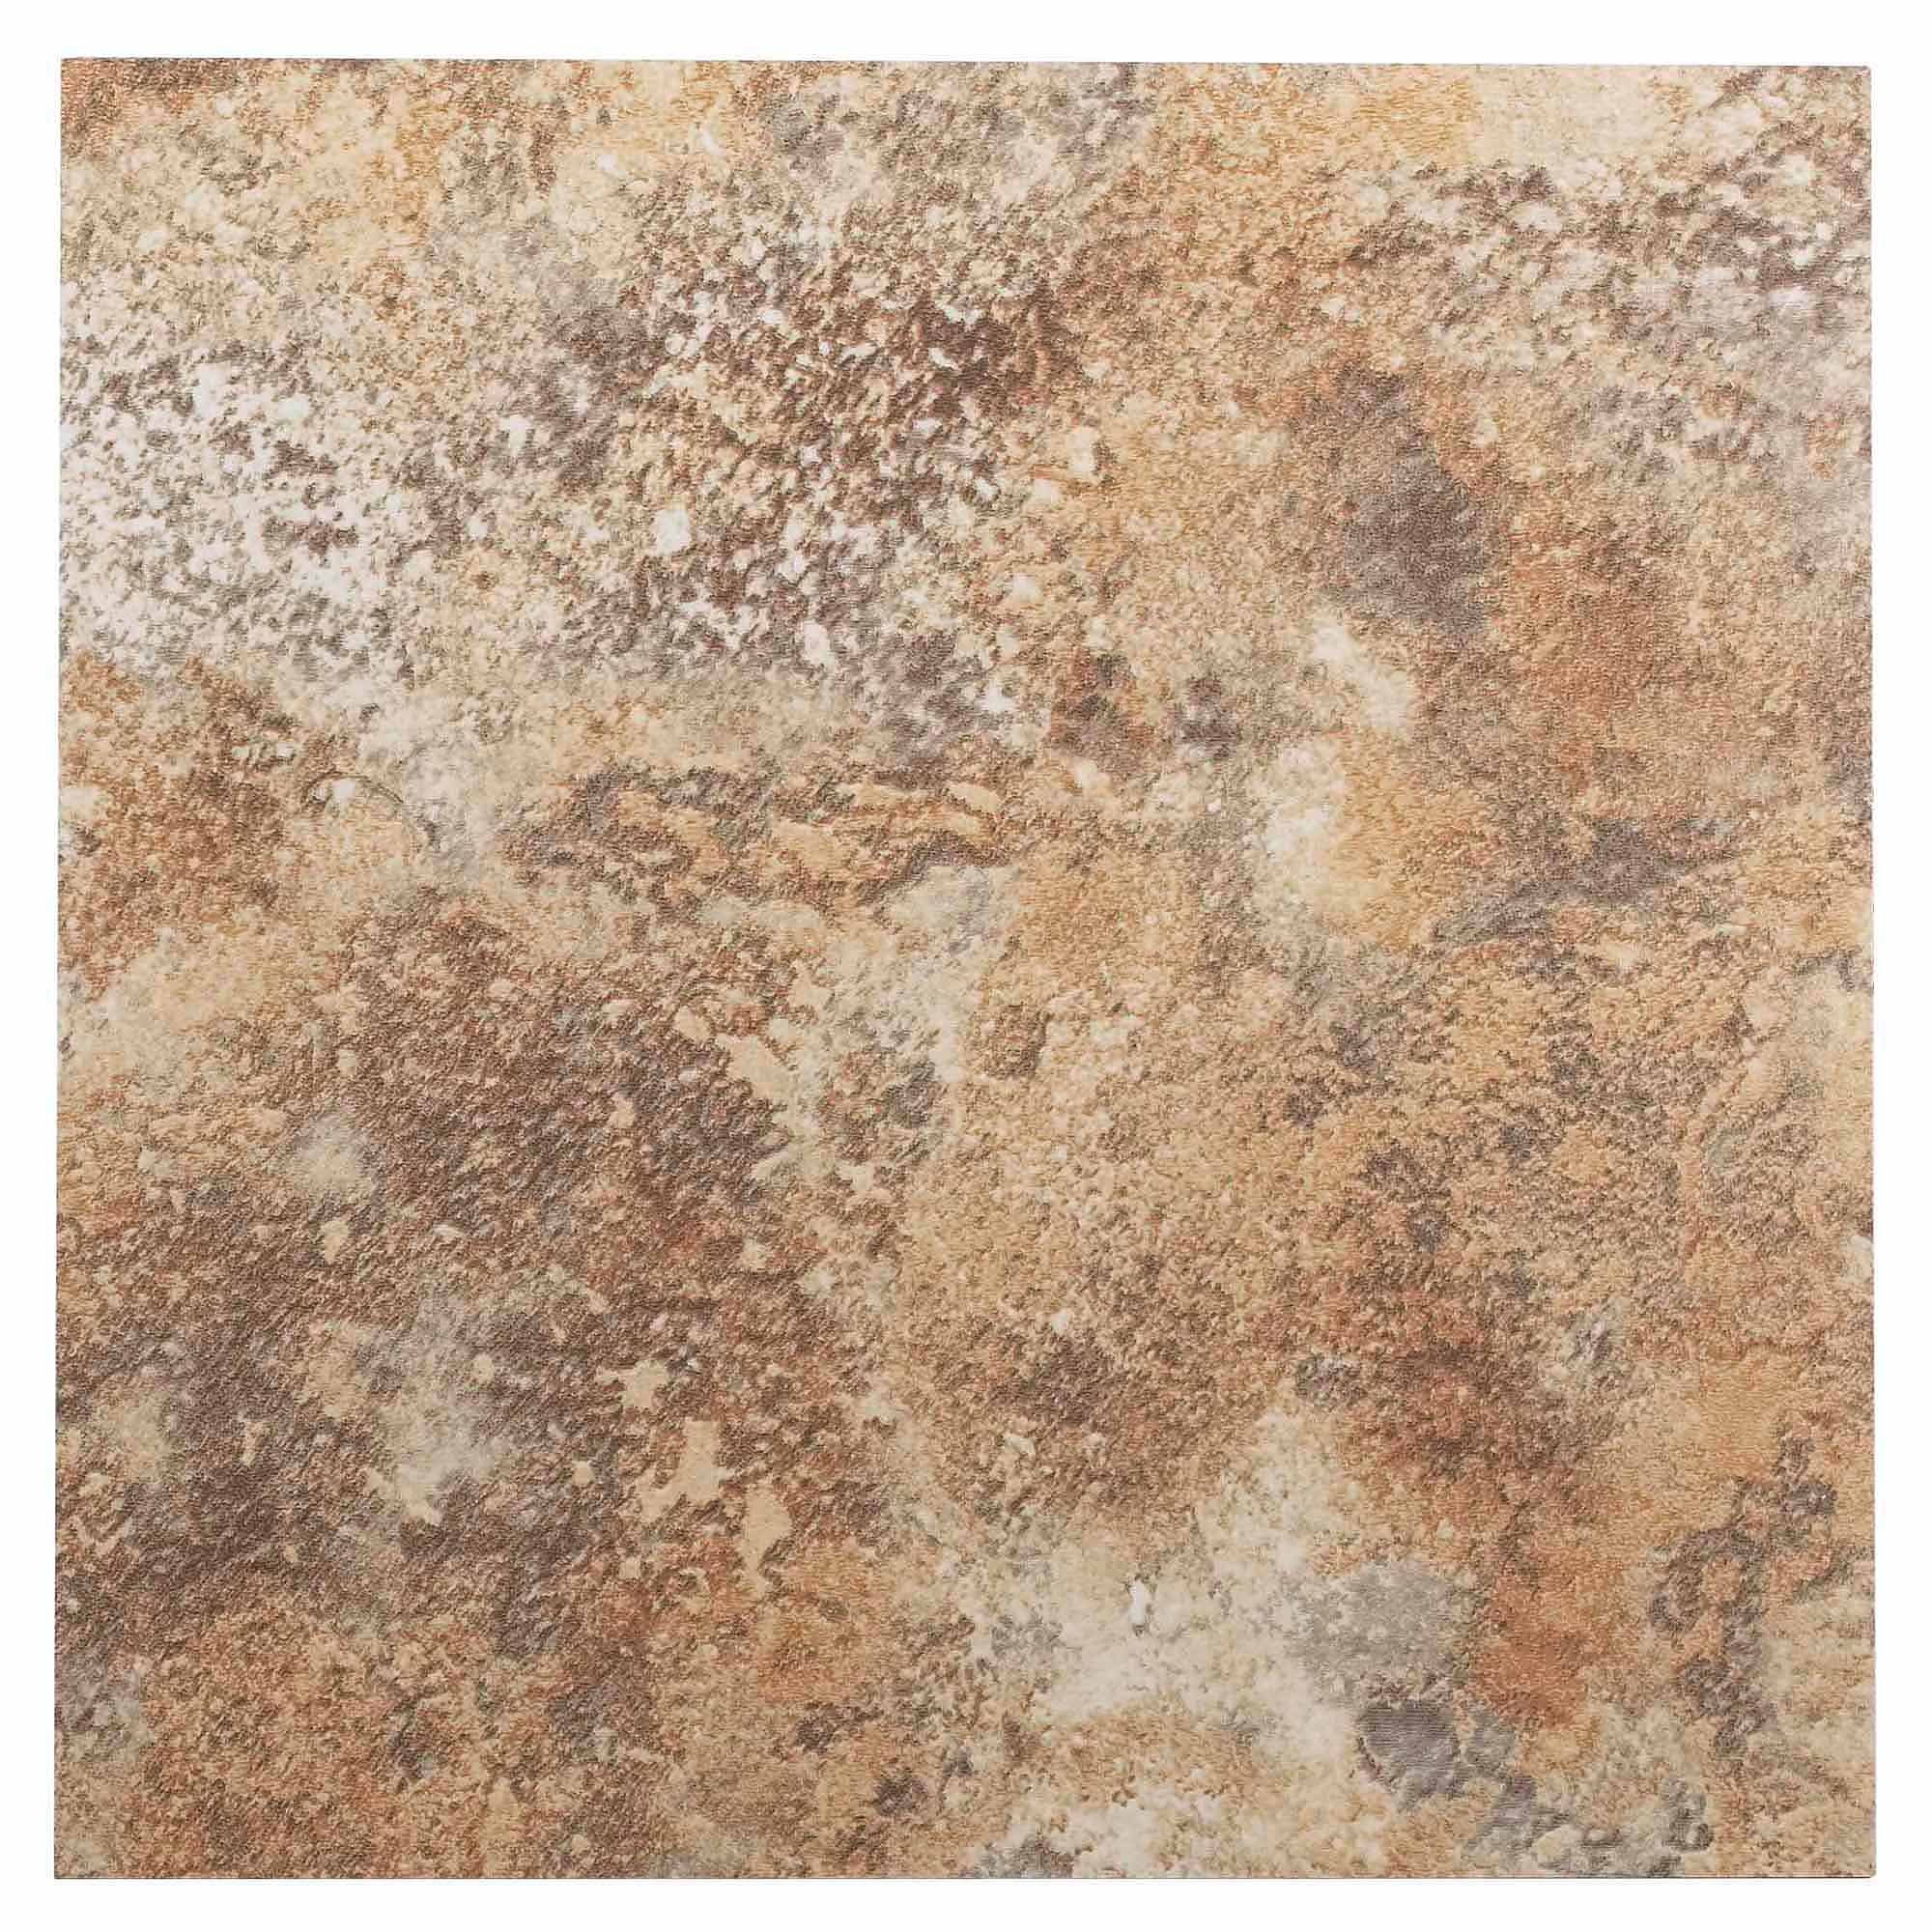 NEXUS Granite 12x12 Self Adhesive Vinyl Floor Tile - 20 Tiles/20 Sq.Ft.